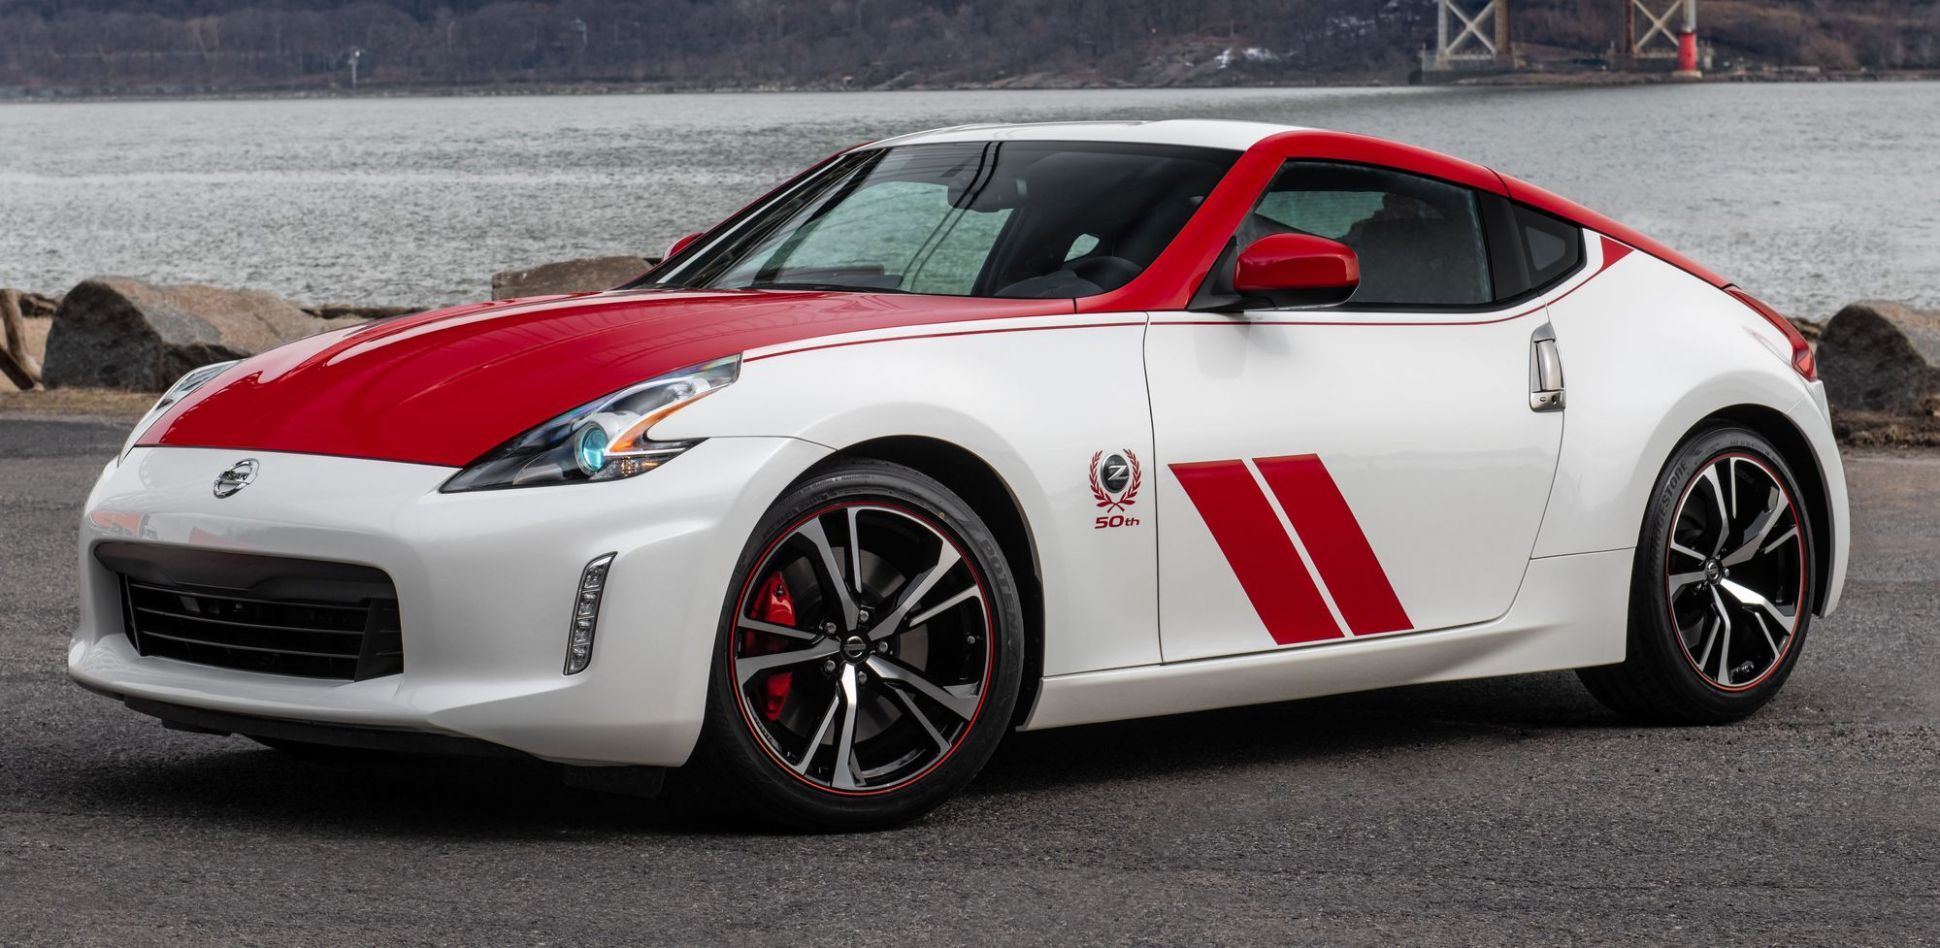 Nissan Reveals The 2020 370z 50th Anniversary Edition At New York Nissan 370z Nissan Nissan Z